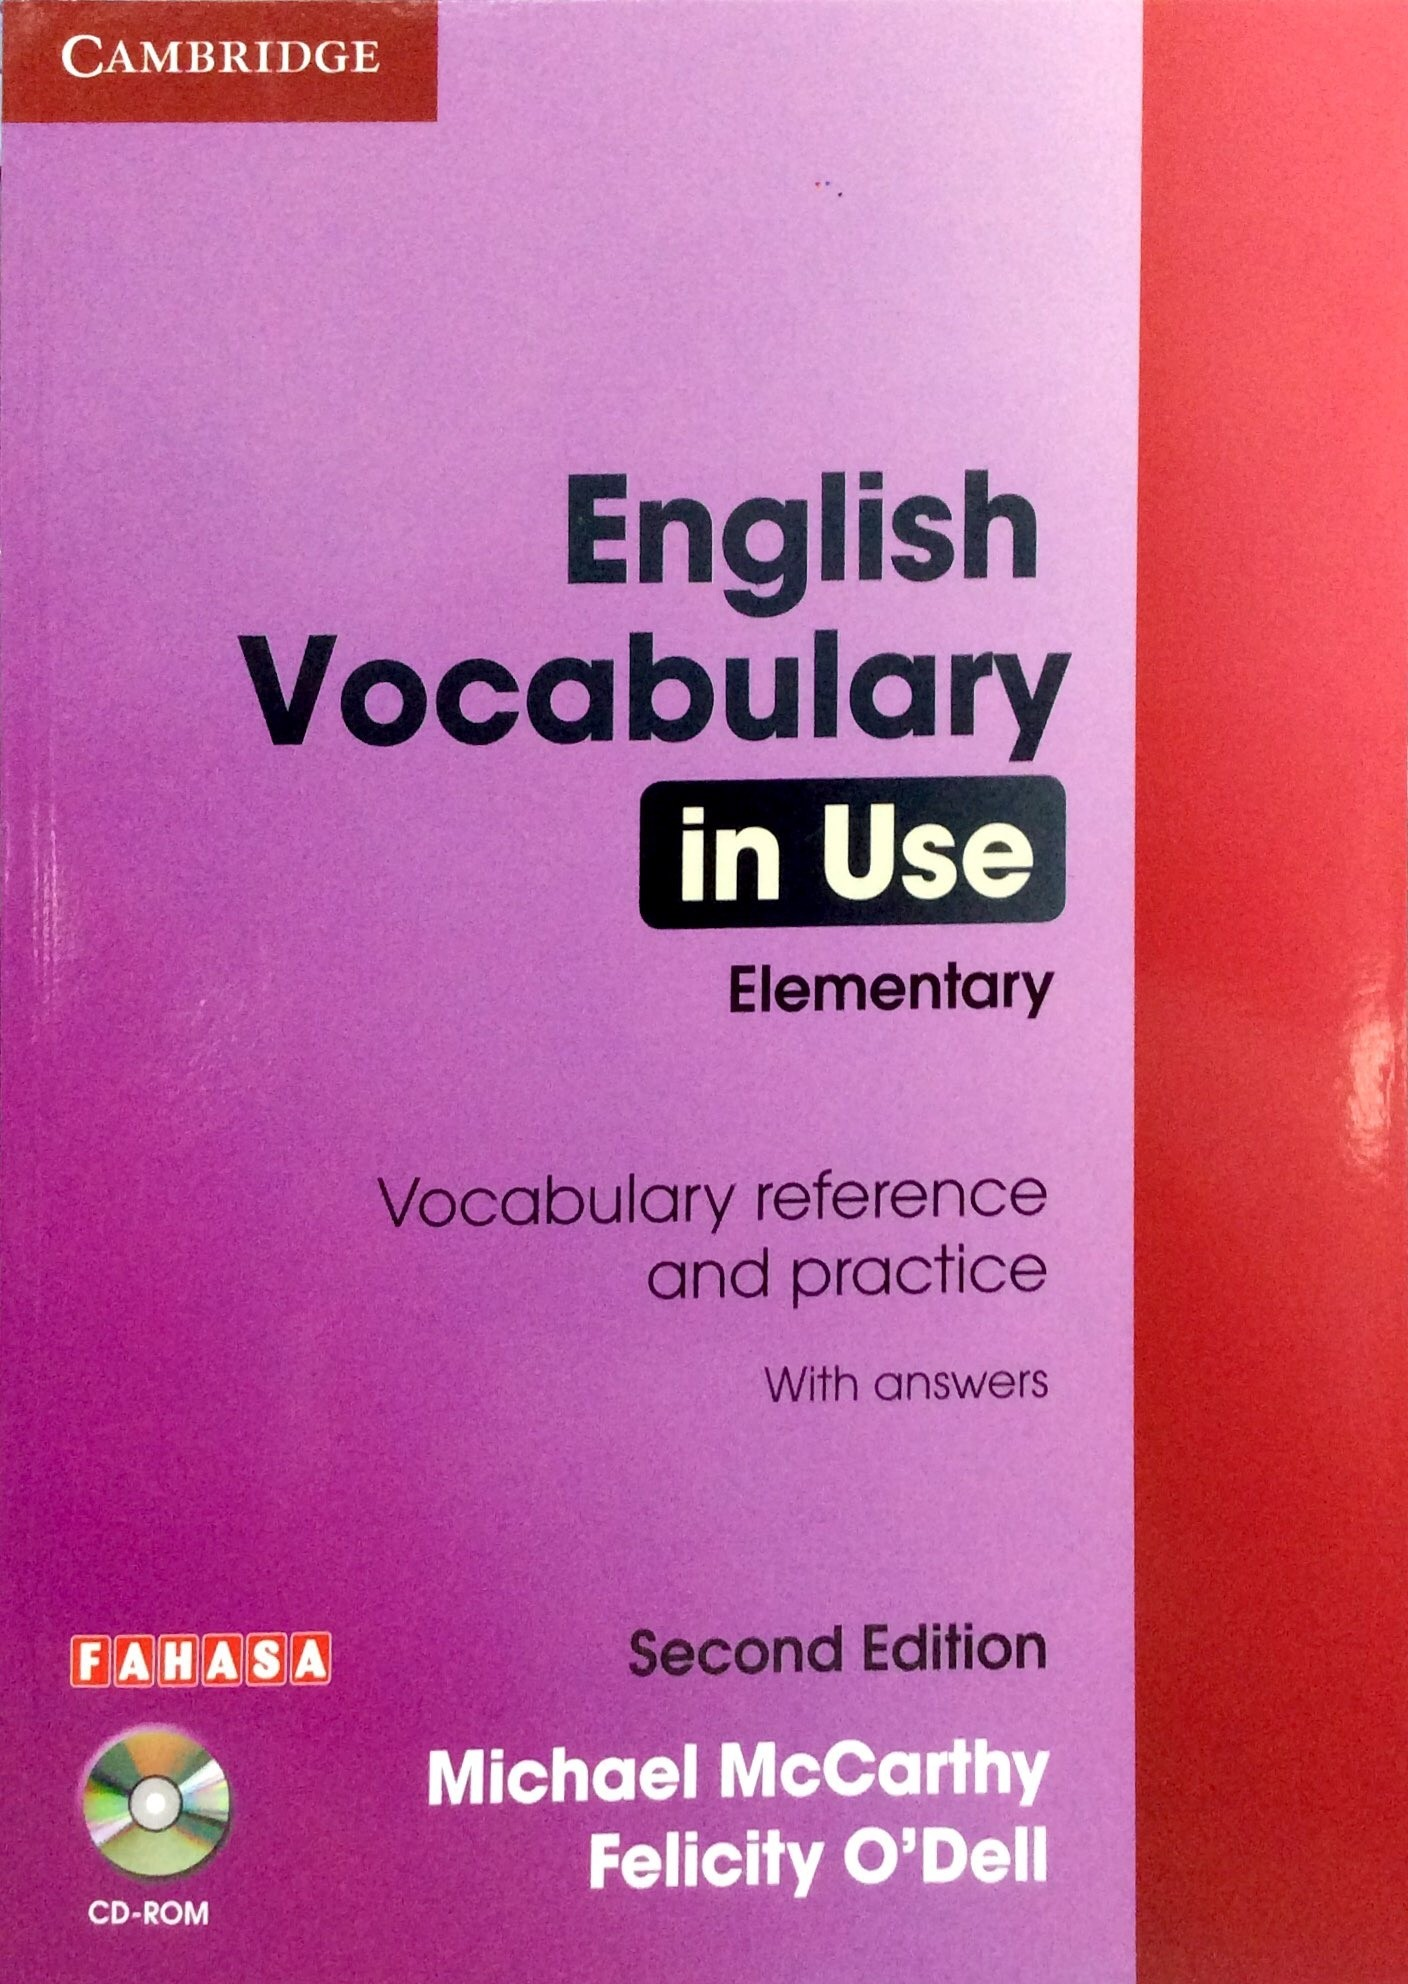 English Vocabulary in Use - Elementary (Sách kèm CD)